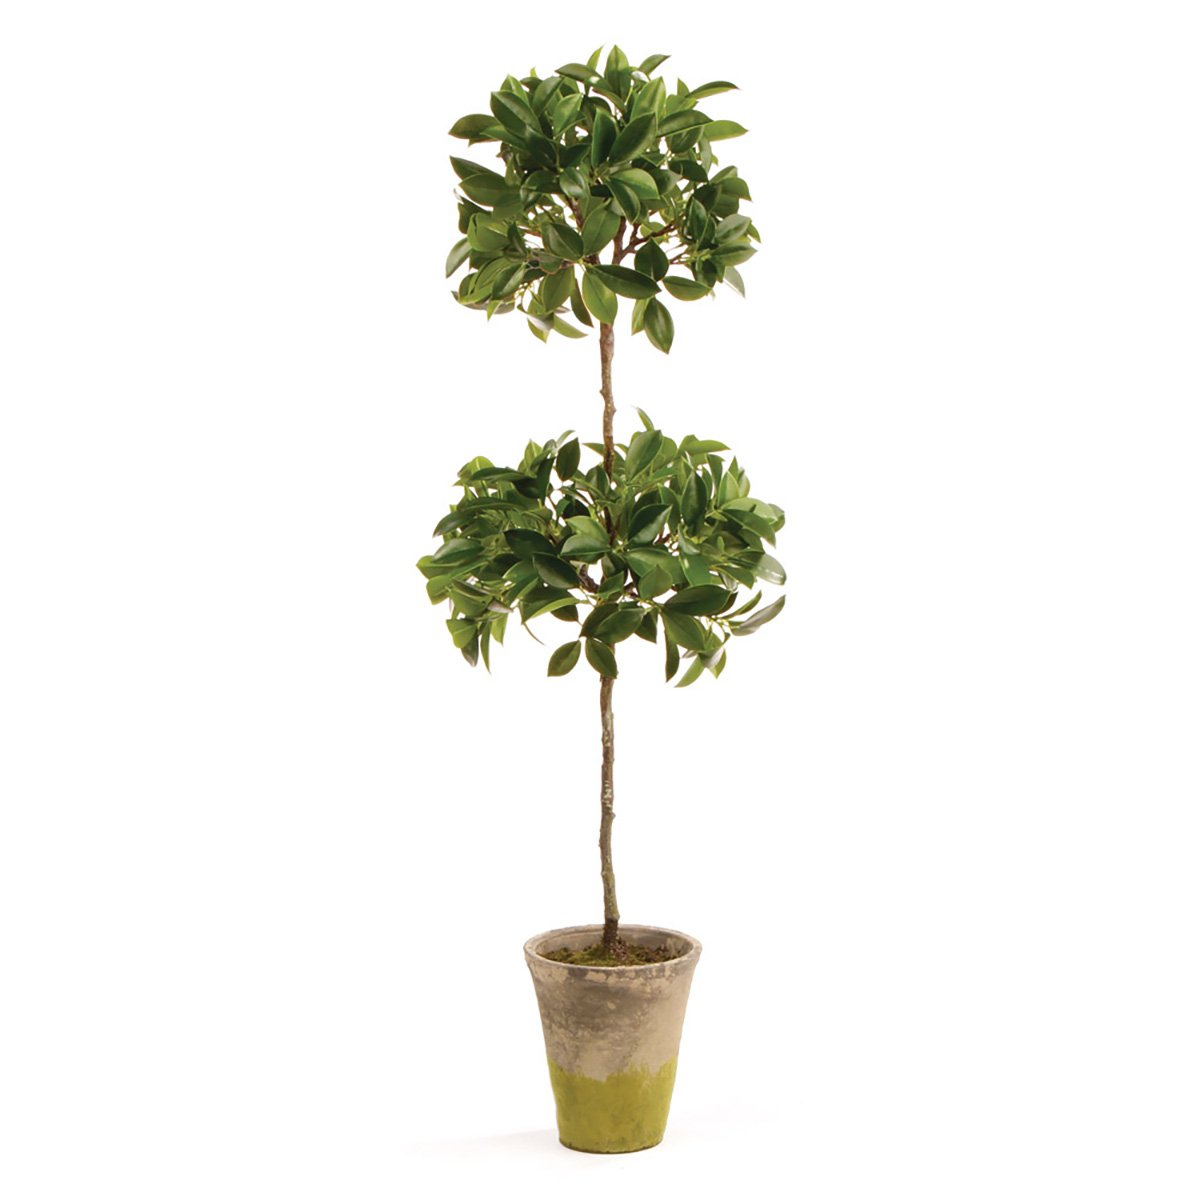 Conservatory Ficus Topiary in Pot